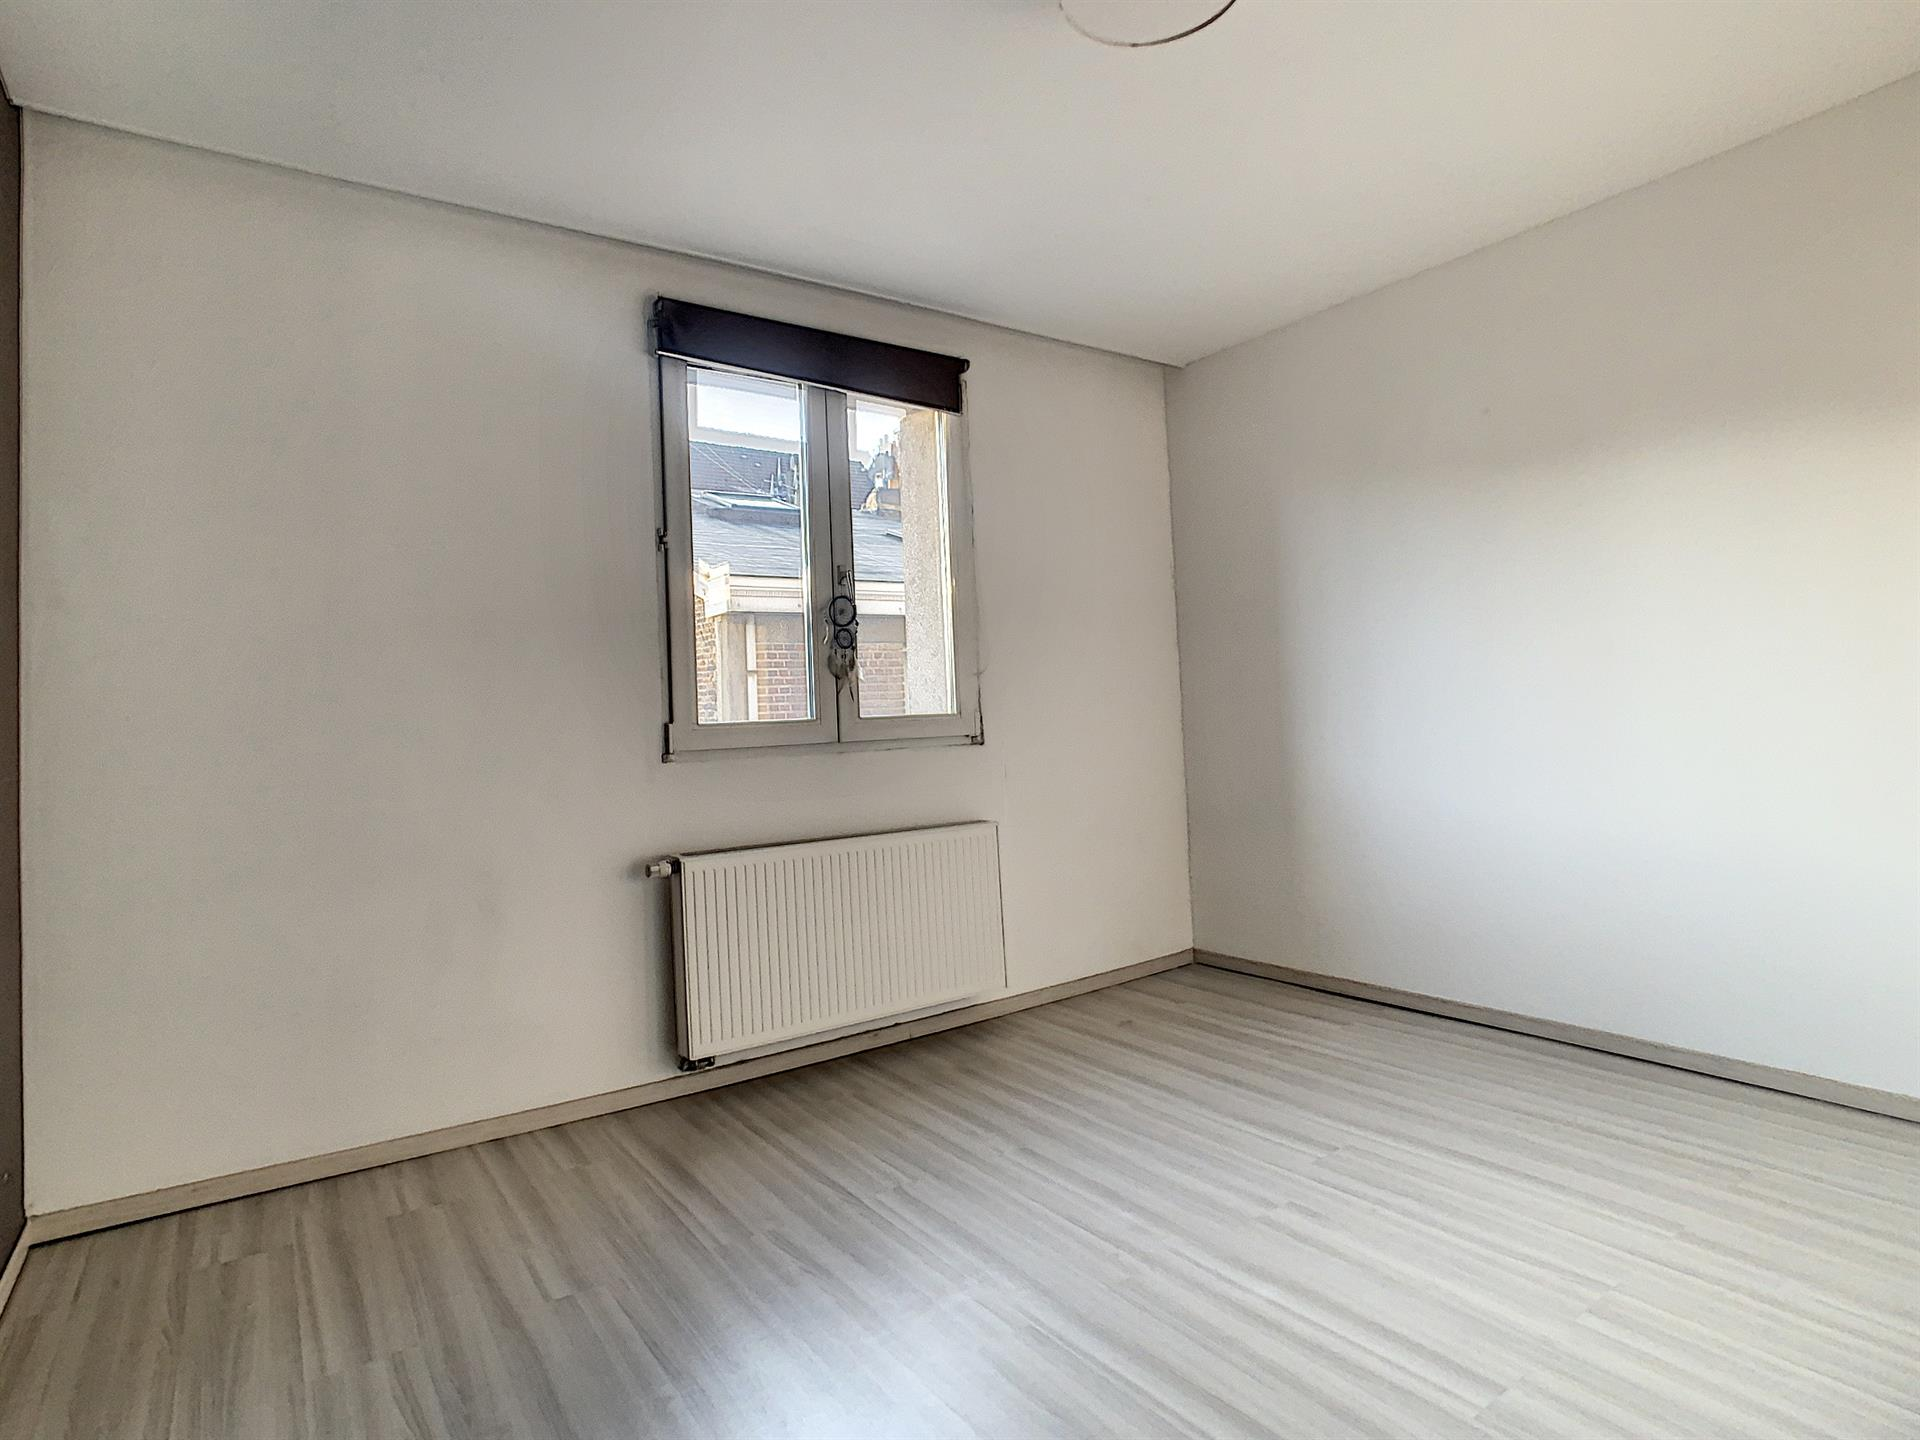 Appartement - Forest - #4274397-7